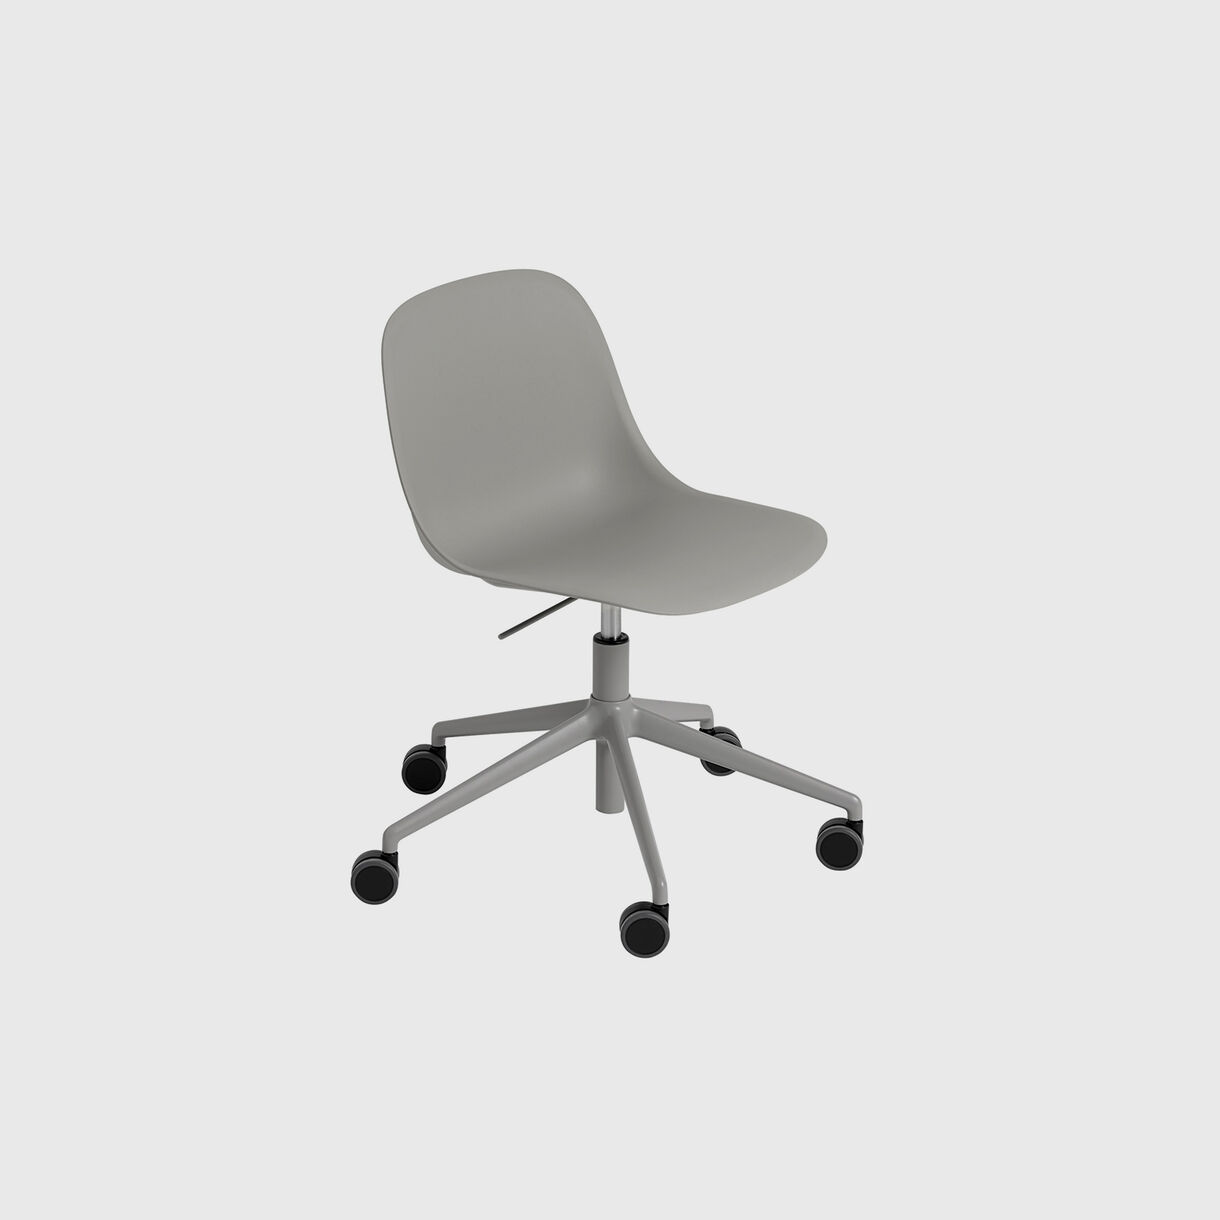 Fiber Side Chair, Swivel Base with Castors & Gas Lift, Grey